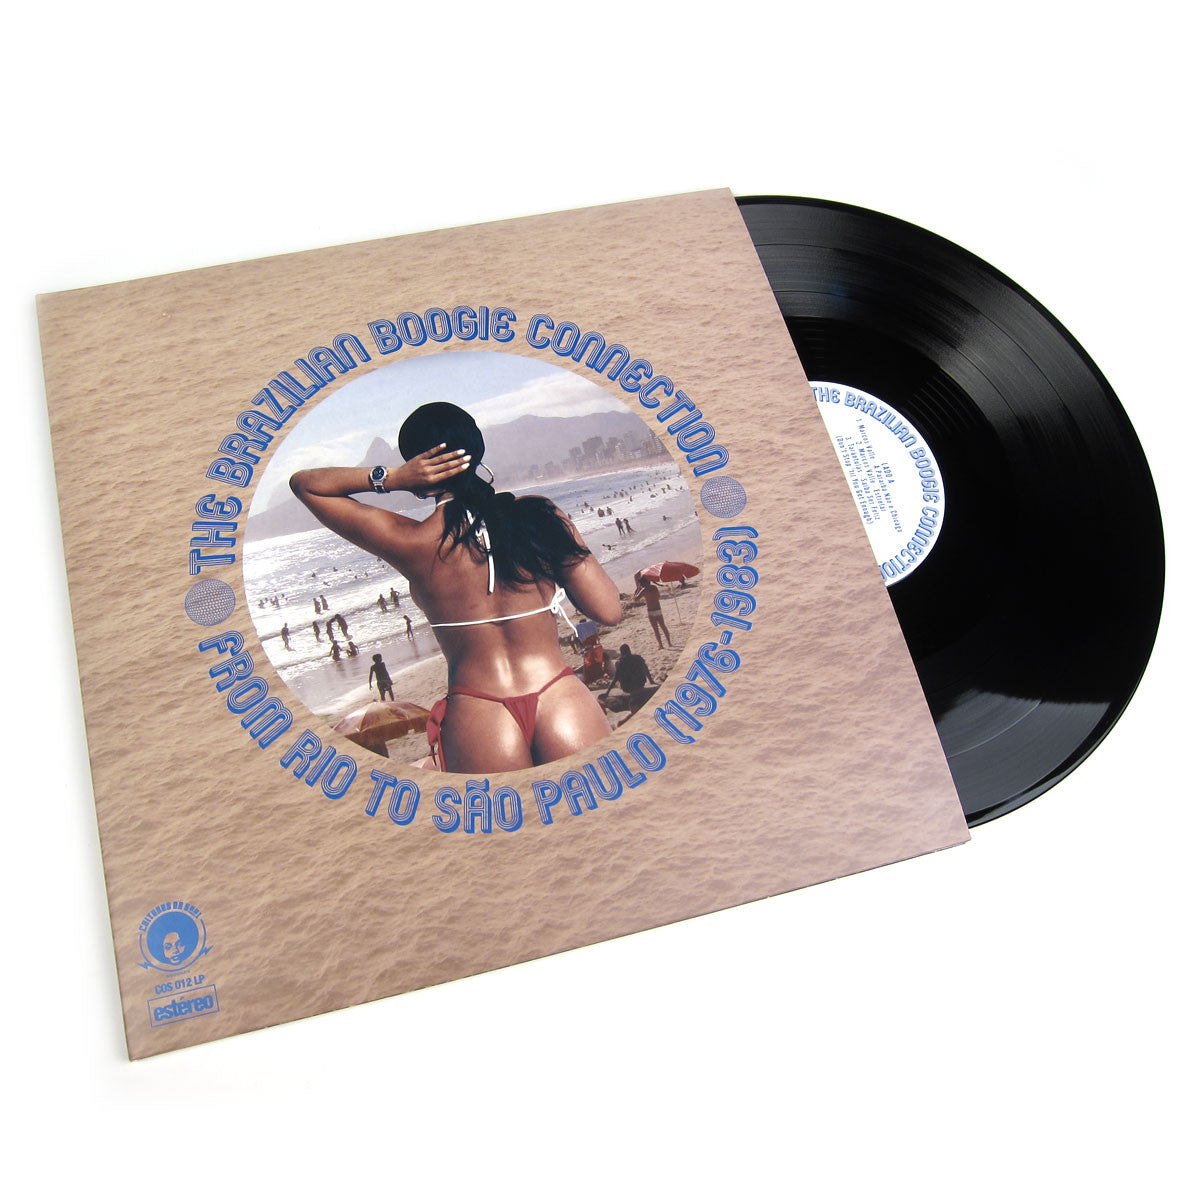 Cultures Of Soul: The Brazilian Boogie Connection - From Rio To Sao Paulo 1976-1983 Vinyl 2LP